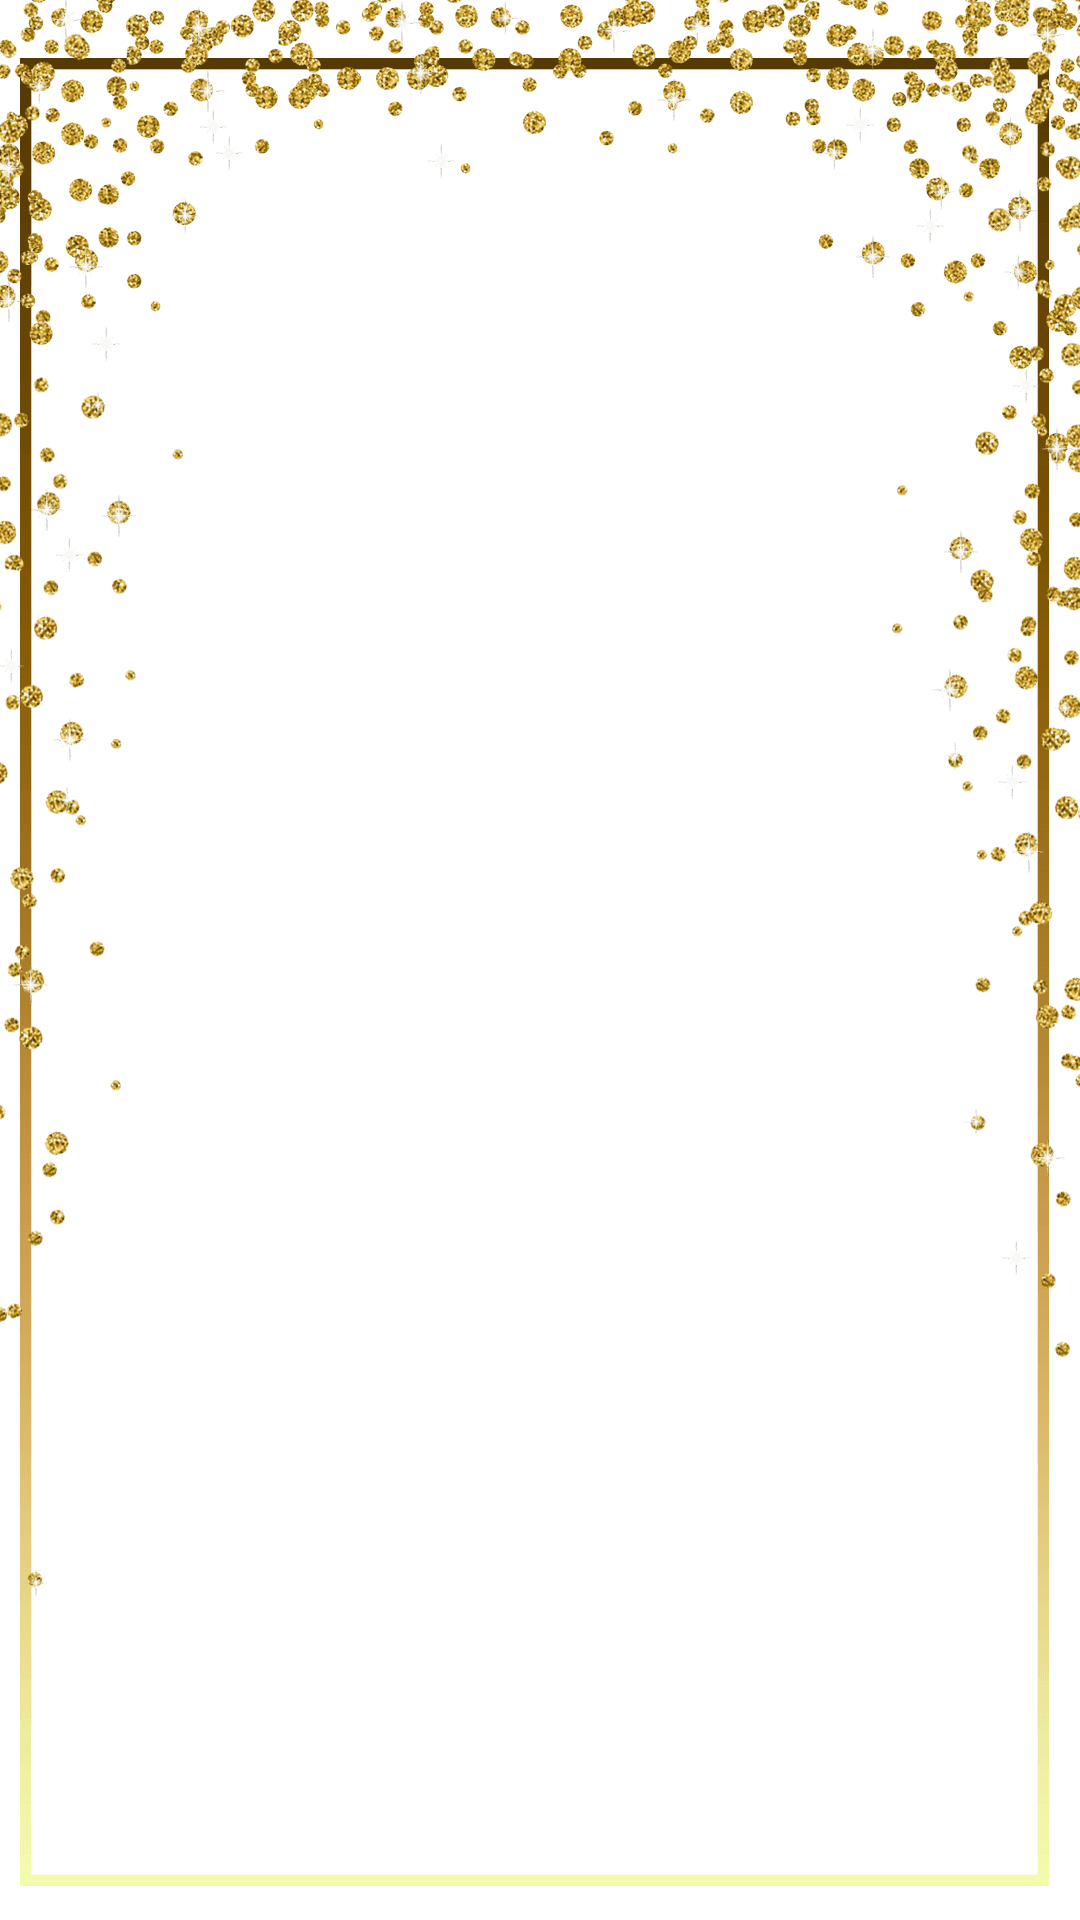 Glitter border png. Gold engagement snapchat filter